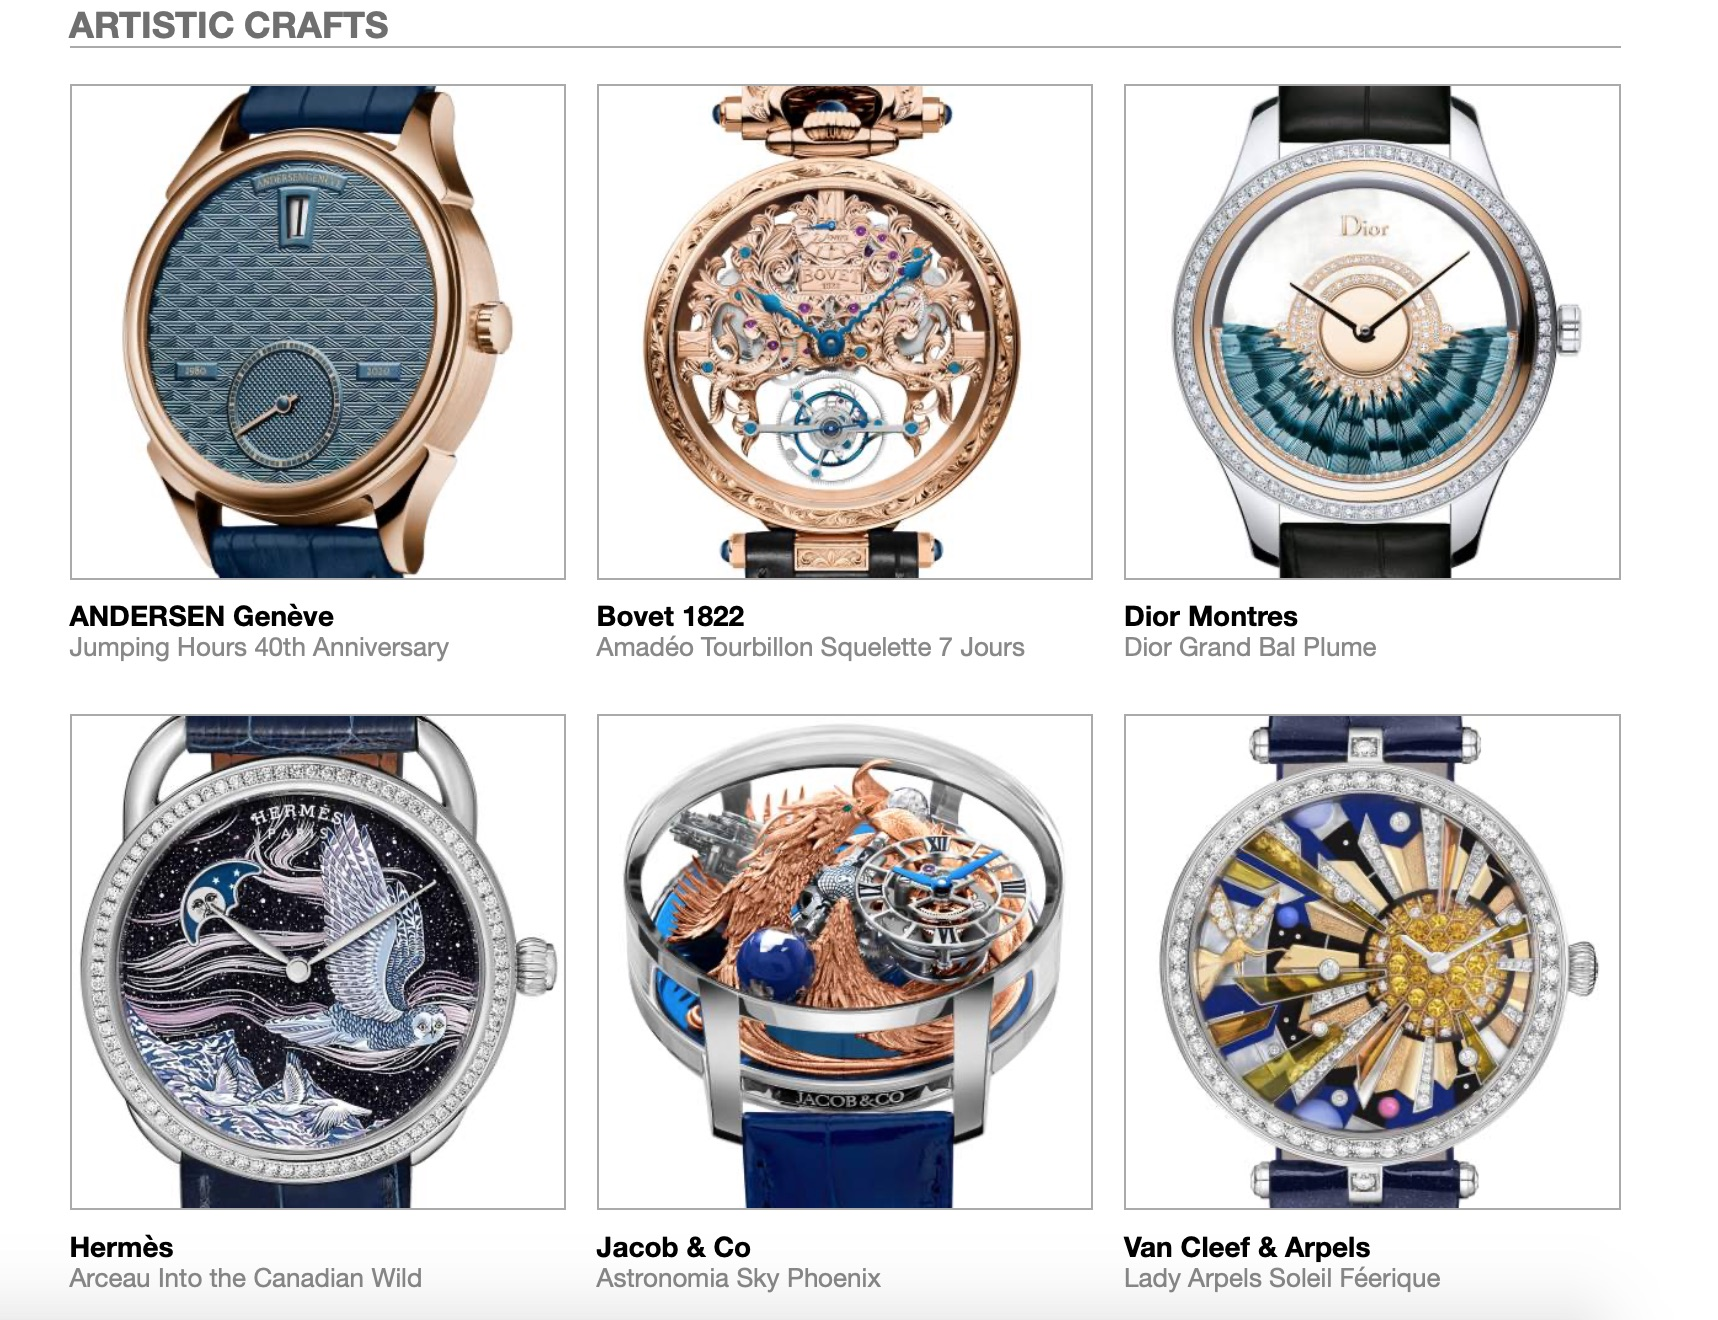 Grand Prix d'Horlogerie de Genève GPHG Academy Nominated Watches 2020 Calendar Artistic Crafts